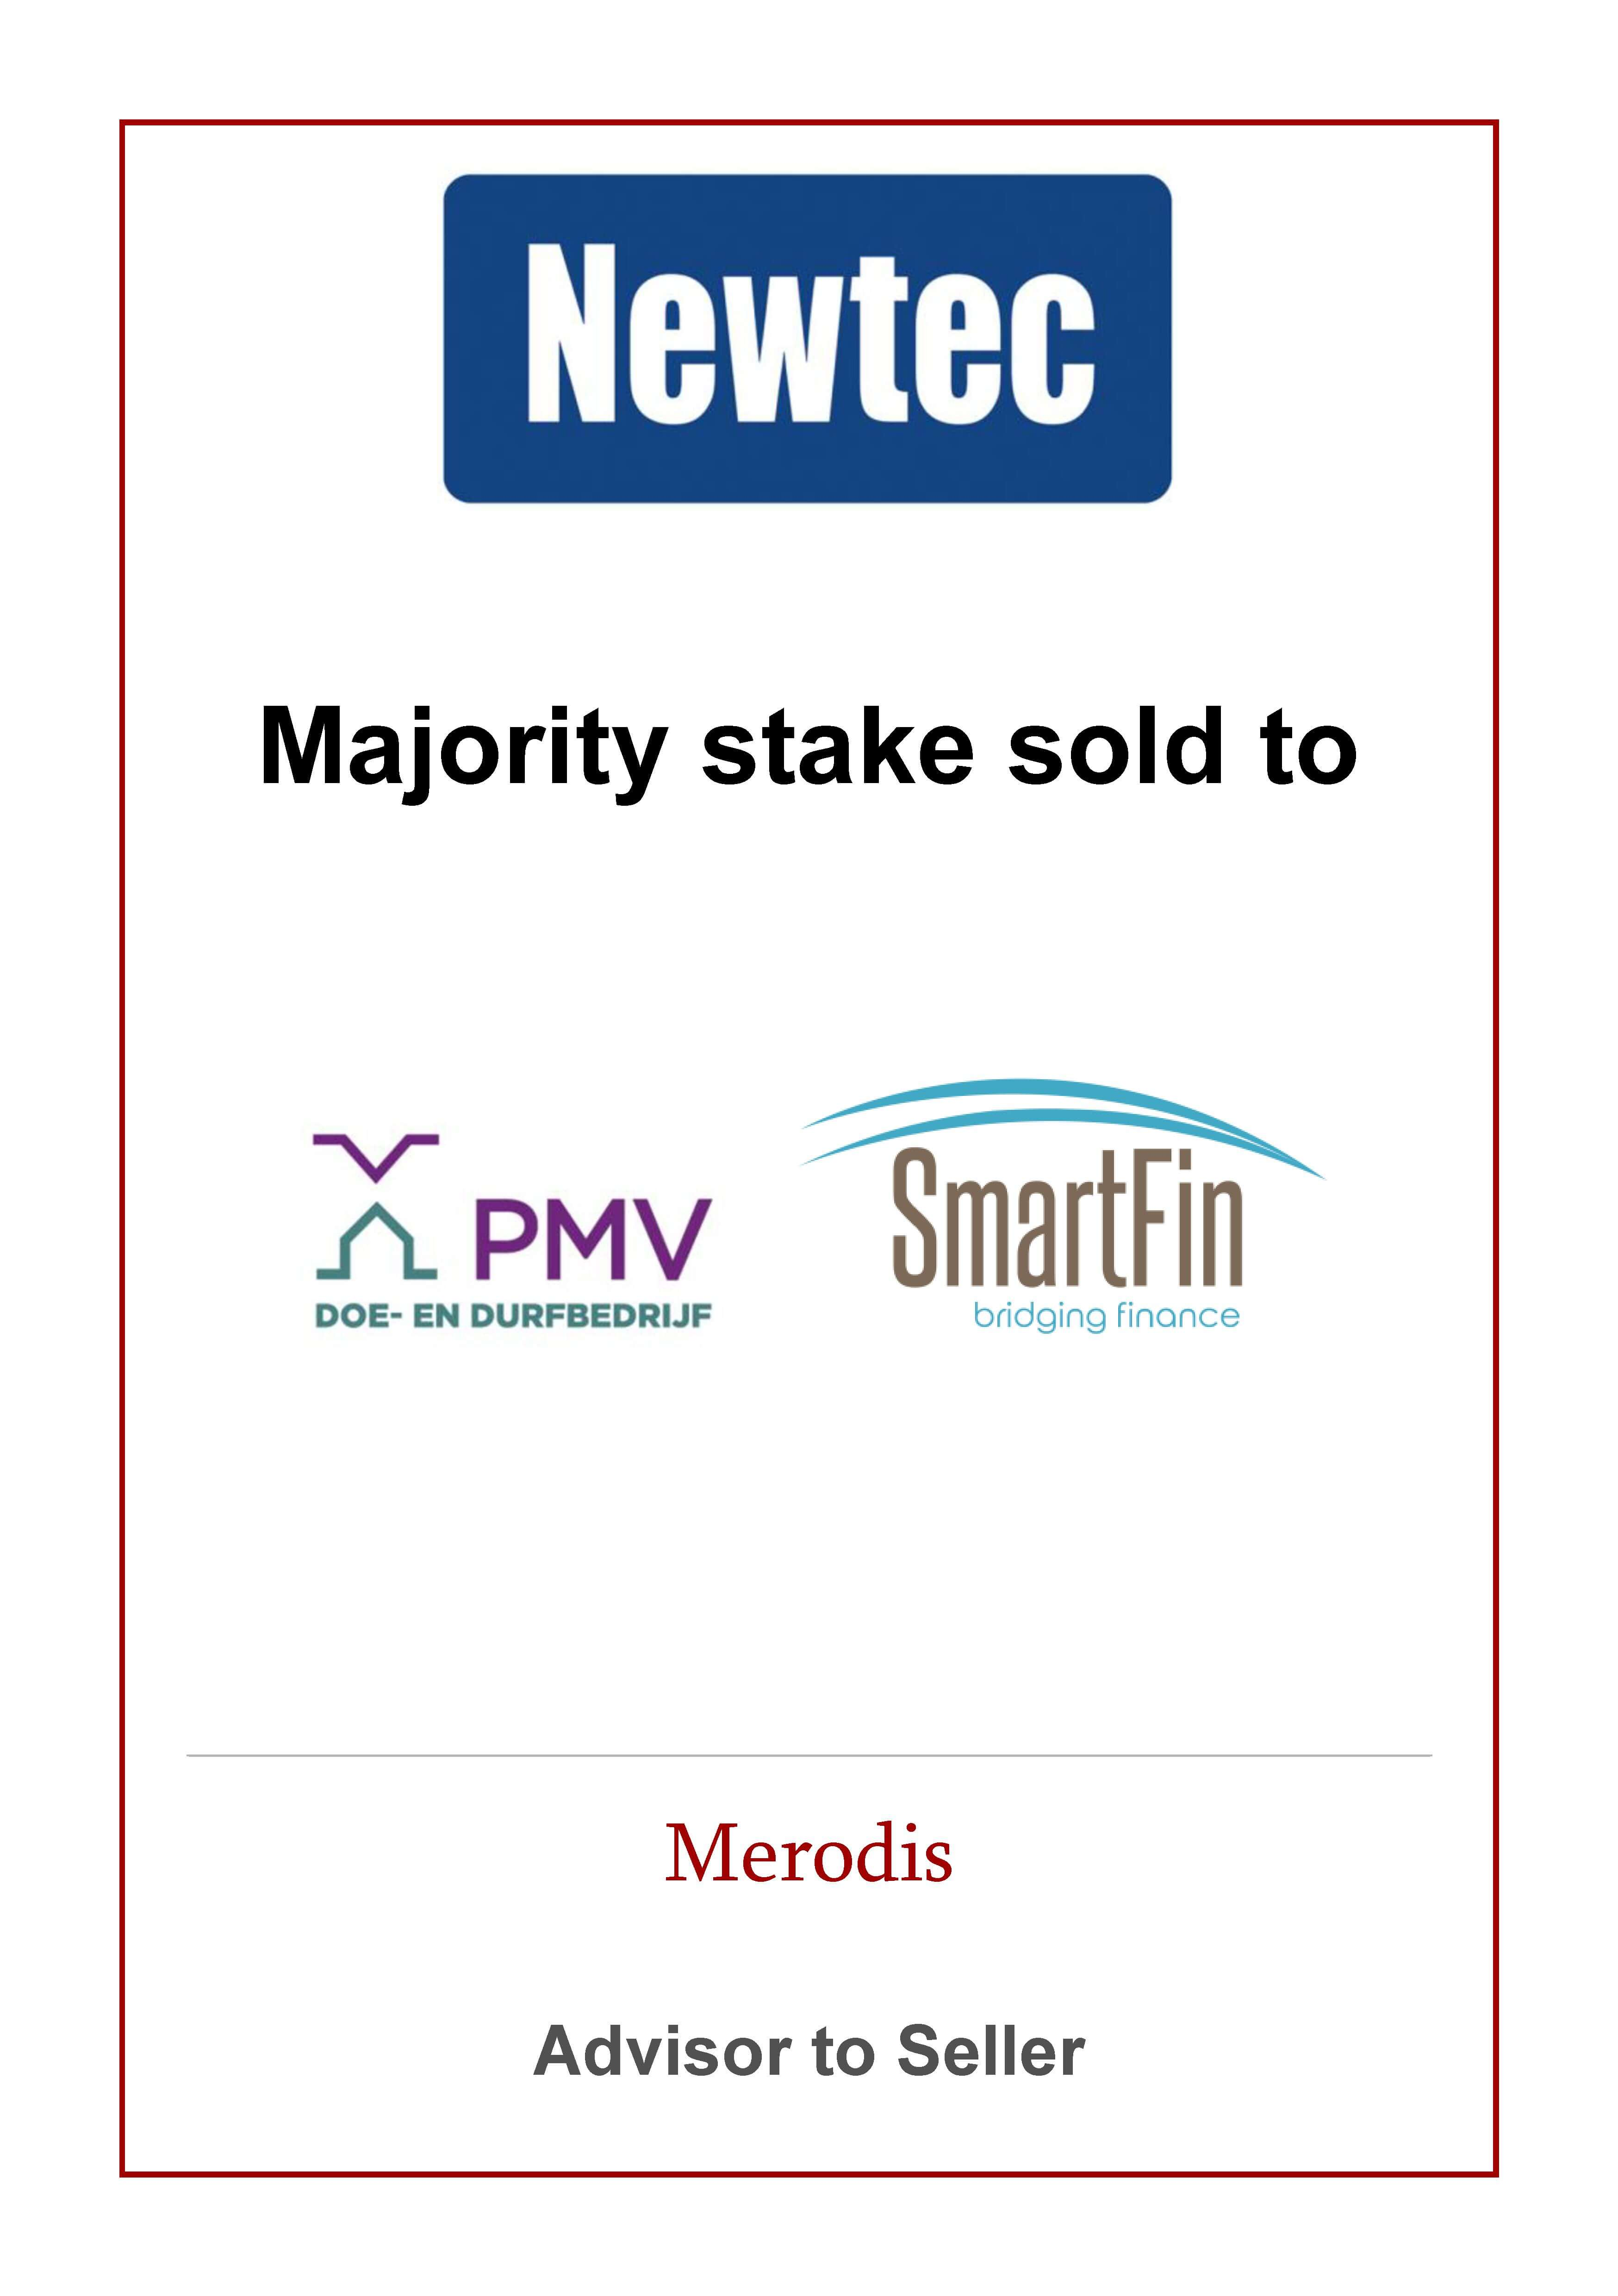 Merodis advises sale of majority stake in Newtec to PMV-Smartfin.